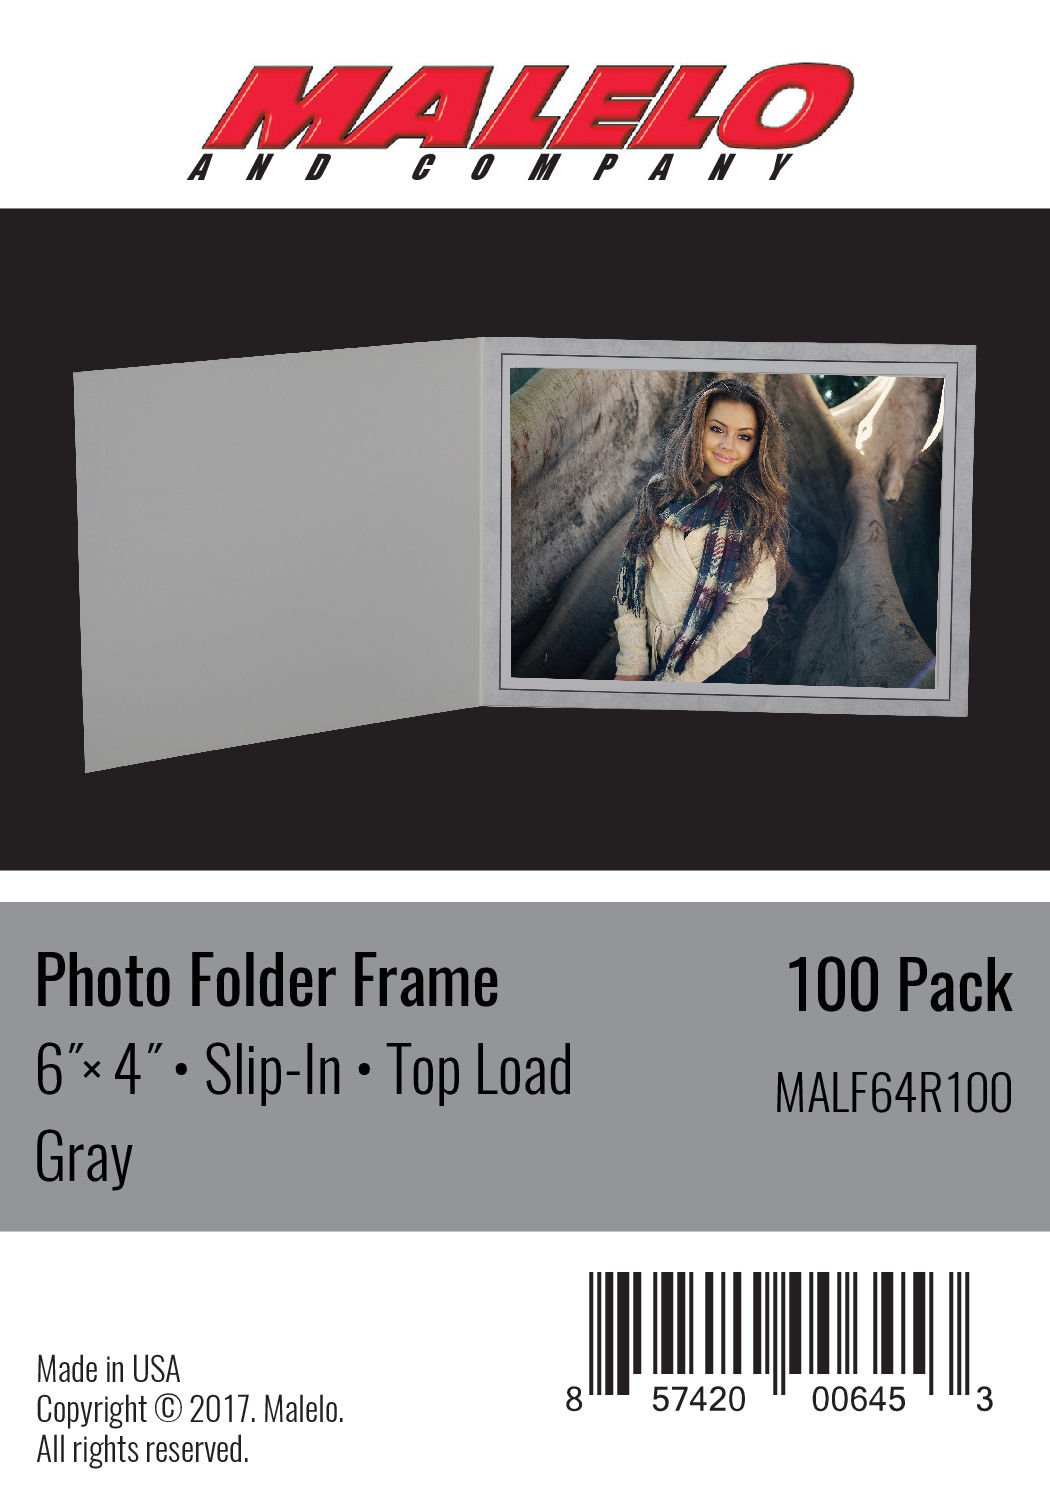 Malelo and Comapny Gray Cardboard Photo Folder Frame 6x4 - Pack of 100